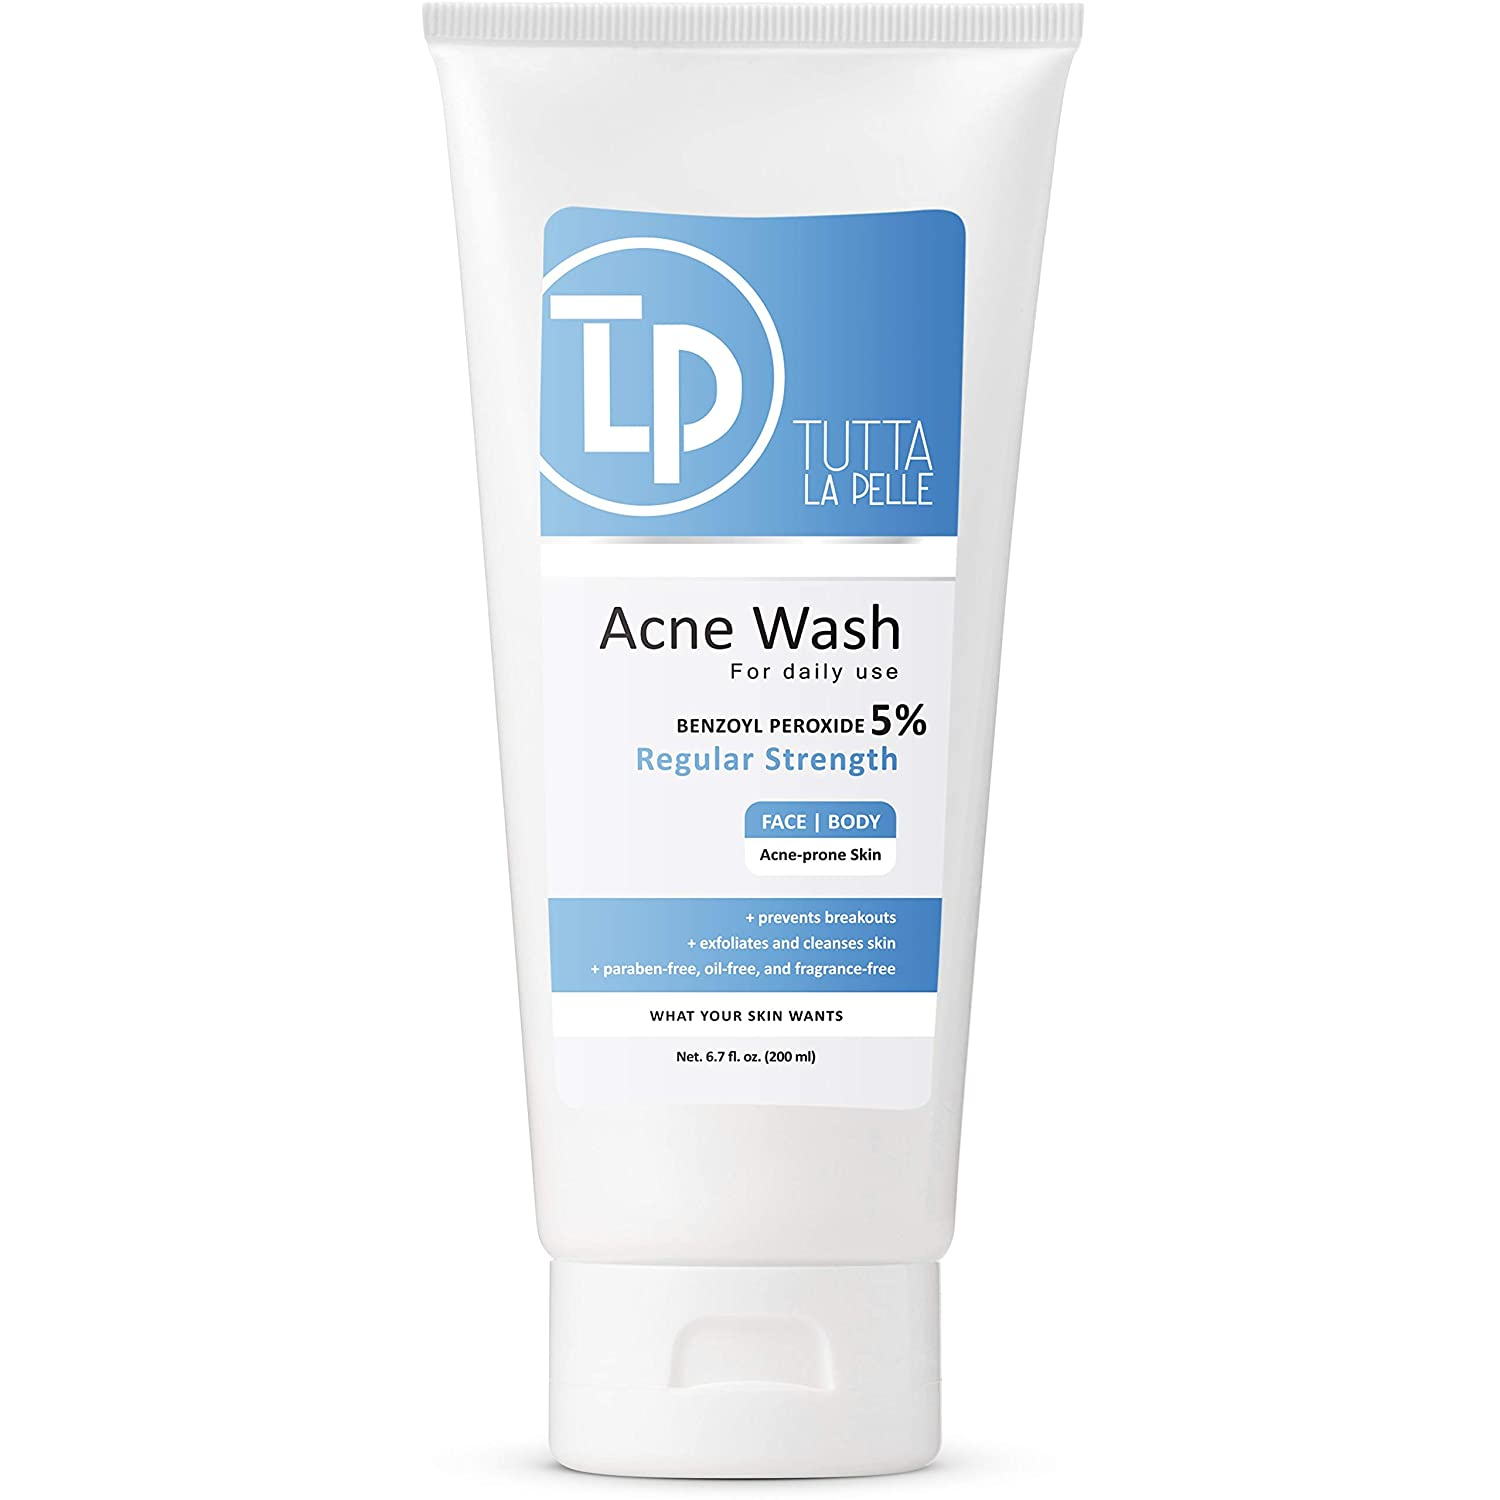 Benzoyl Peroxide 5% Wash Acne Treatment Face Wash & Body Wash -Butt & Back Acne Treatment 6.7 oz